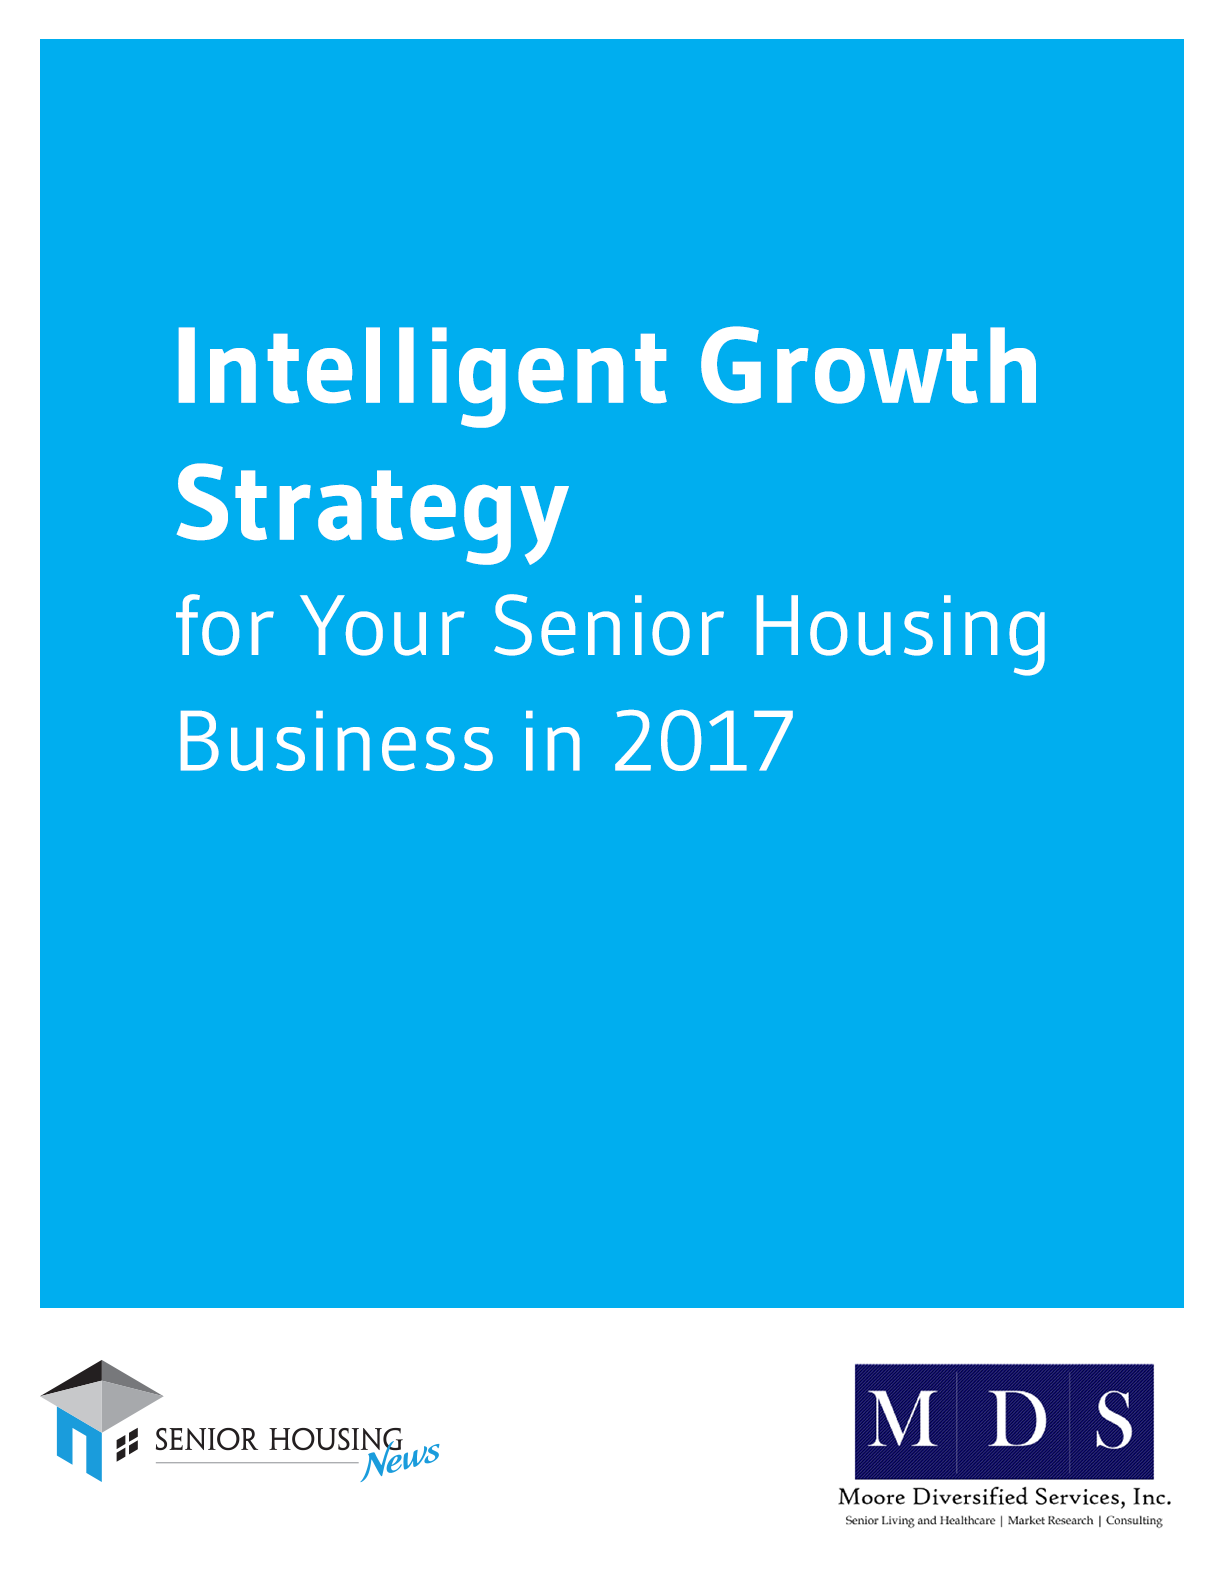 Intelligent Growth Strategy for Your Senior Housing Business in 2017 Webinar